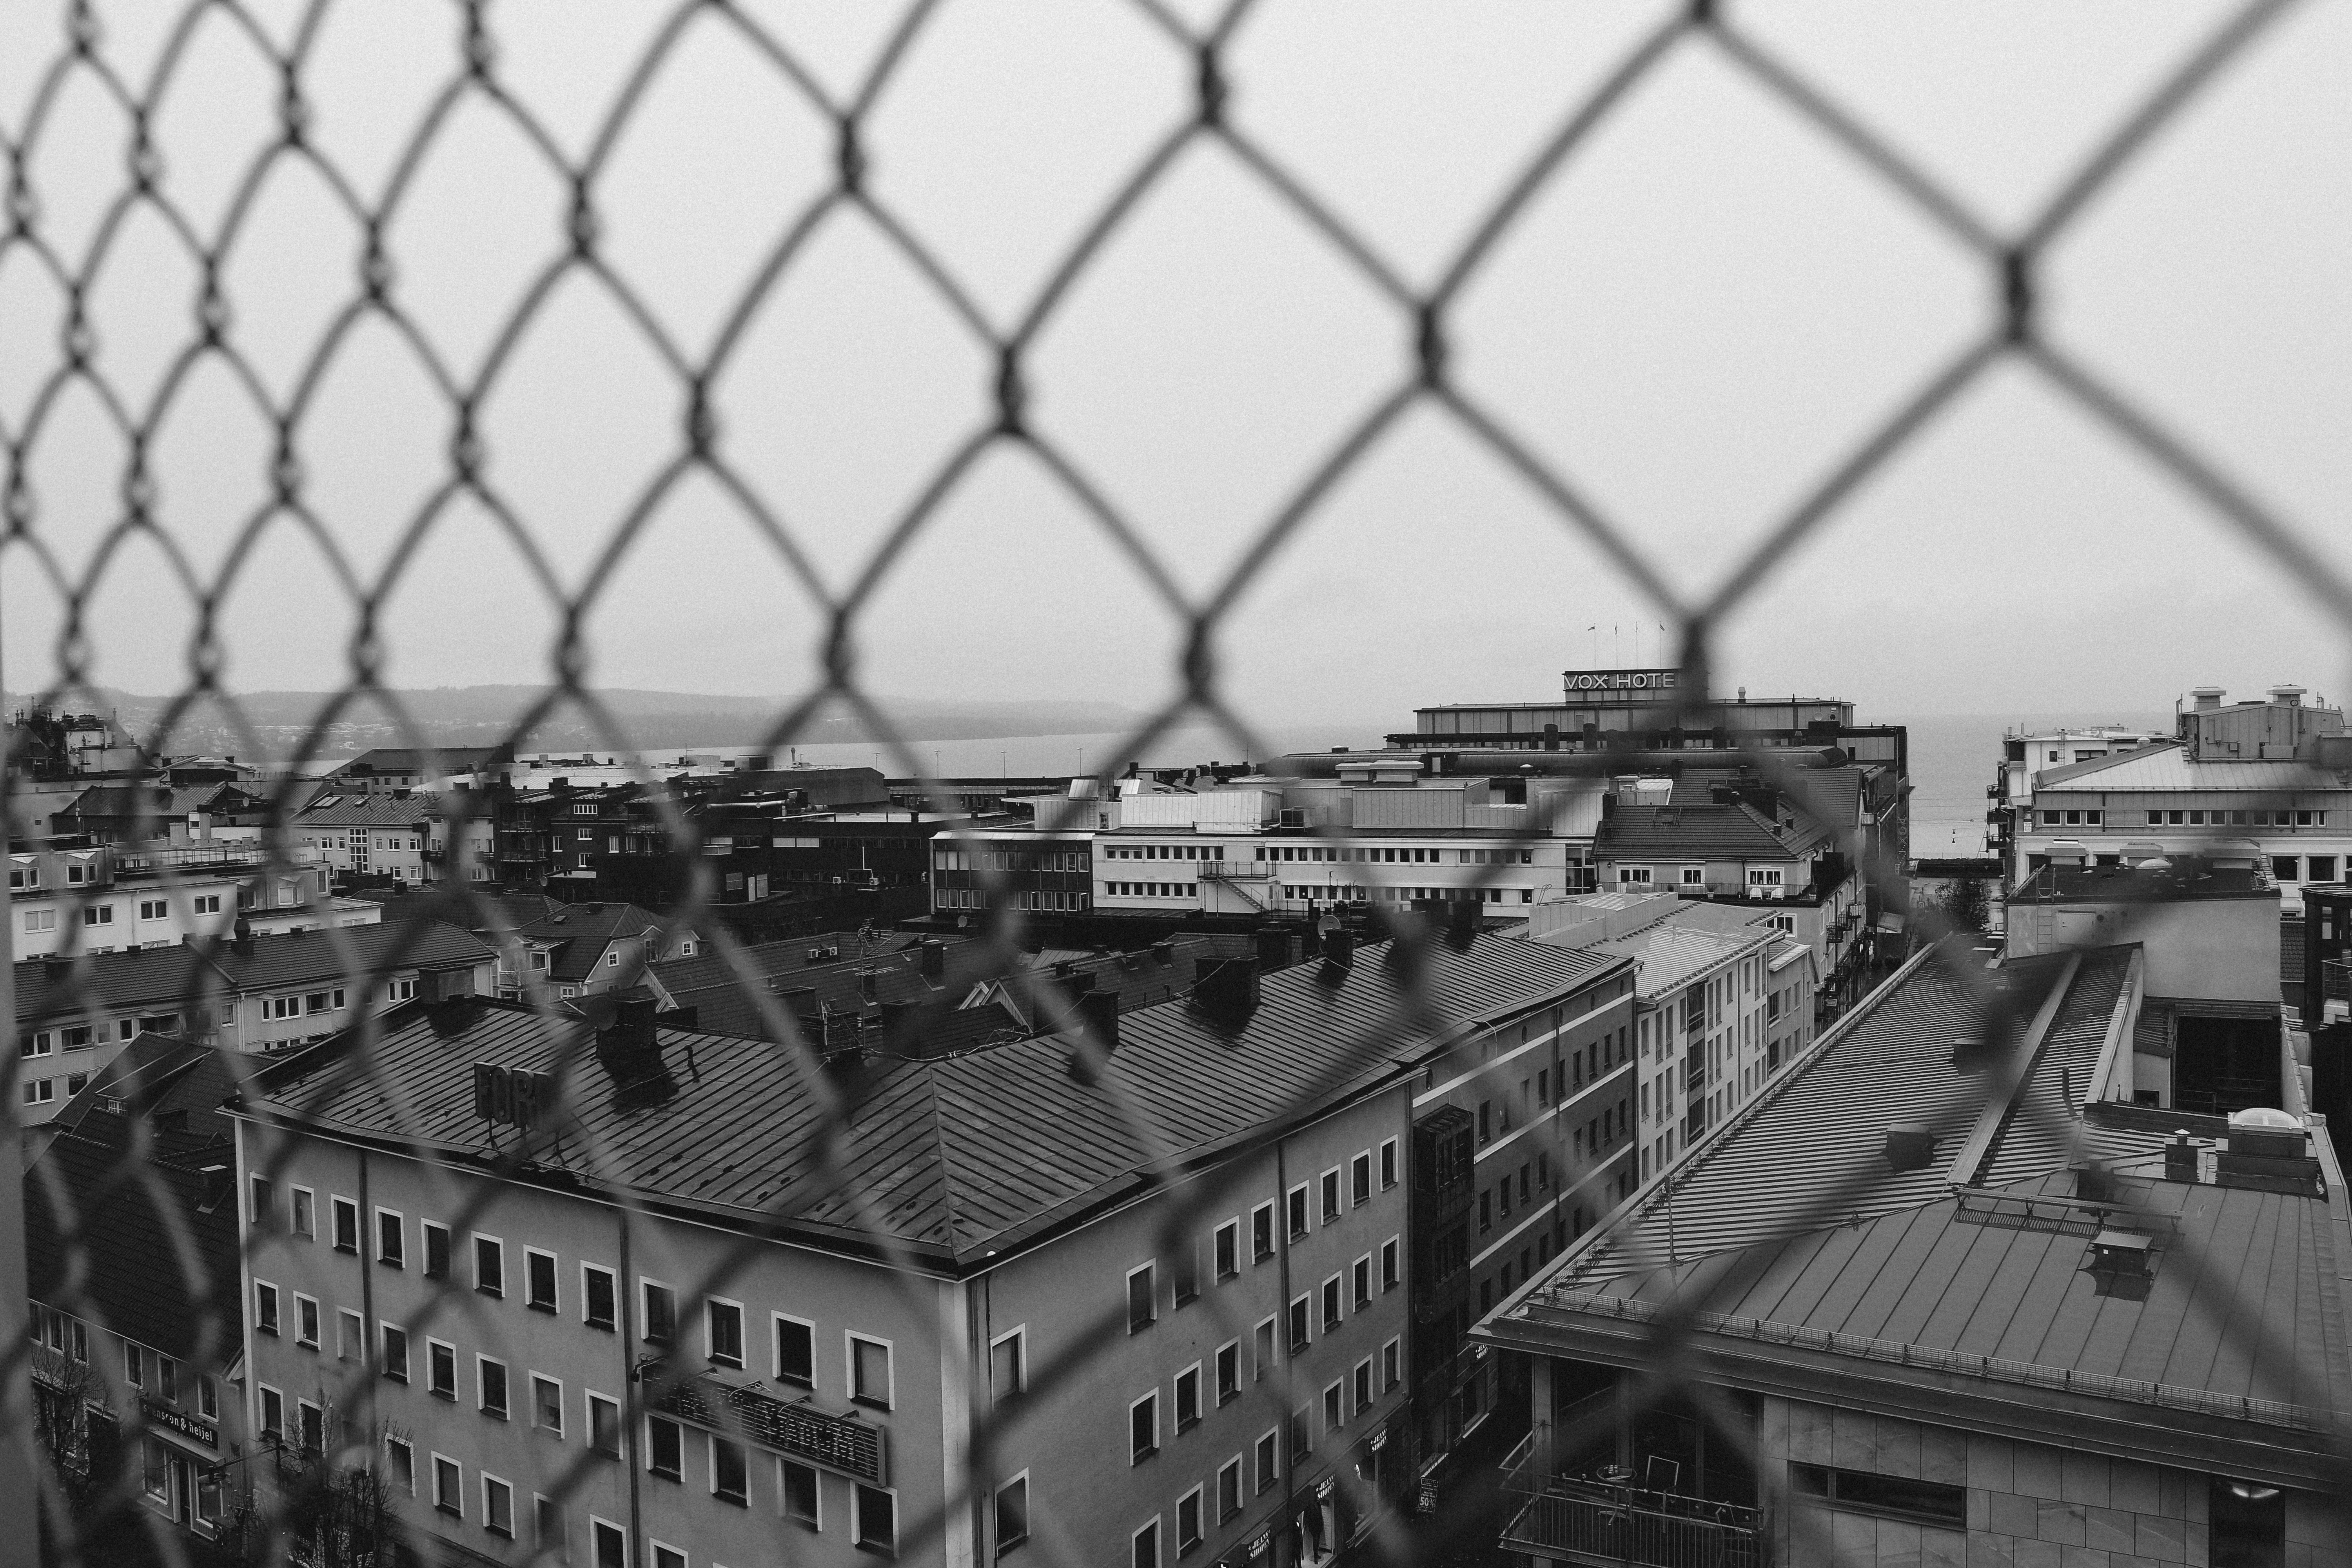 grayscale photo of chain link fence near buildings